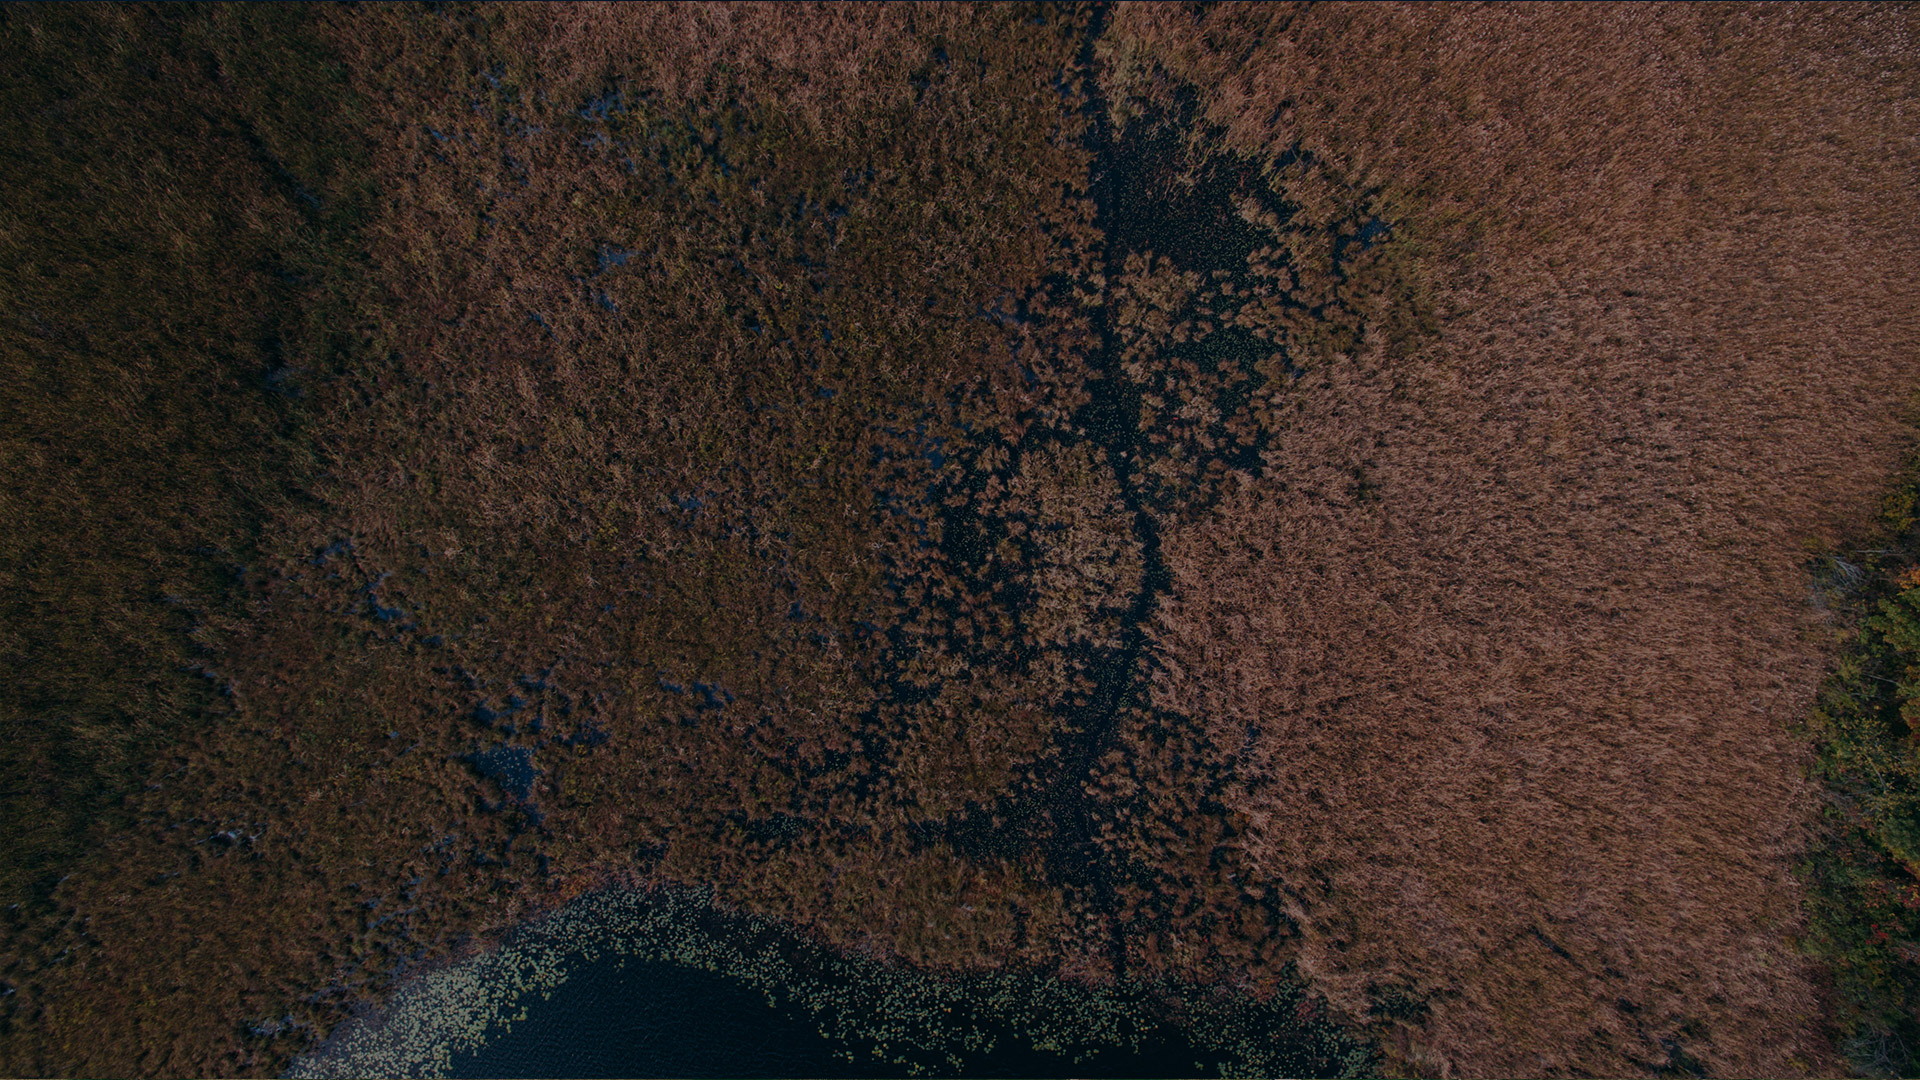 drone image of forest